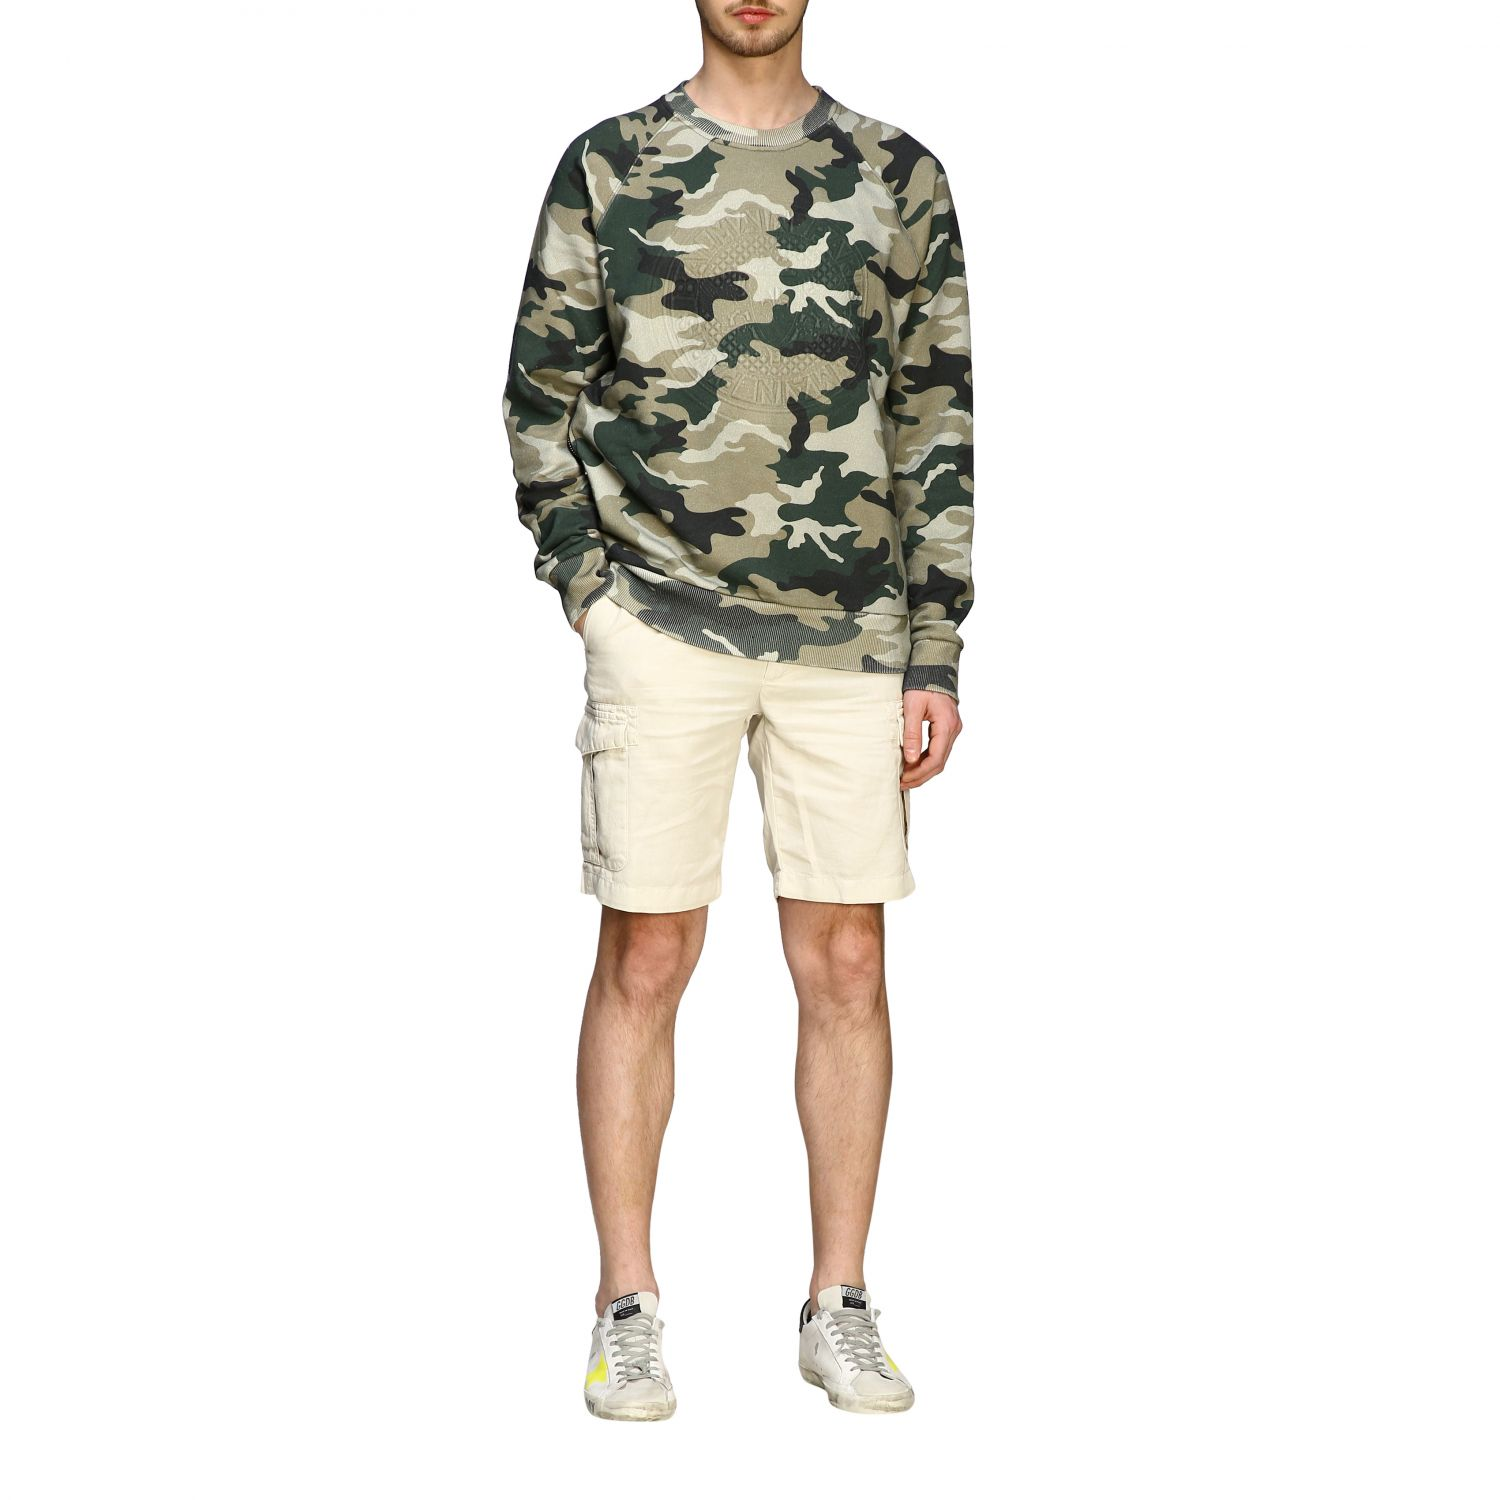 Sweatshirt Balmain: Balmain camouflage sweatshirt with flocked logo and zip military 2